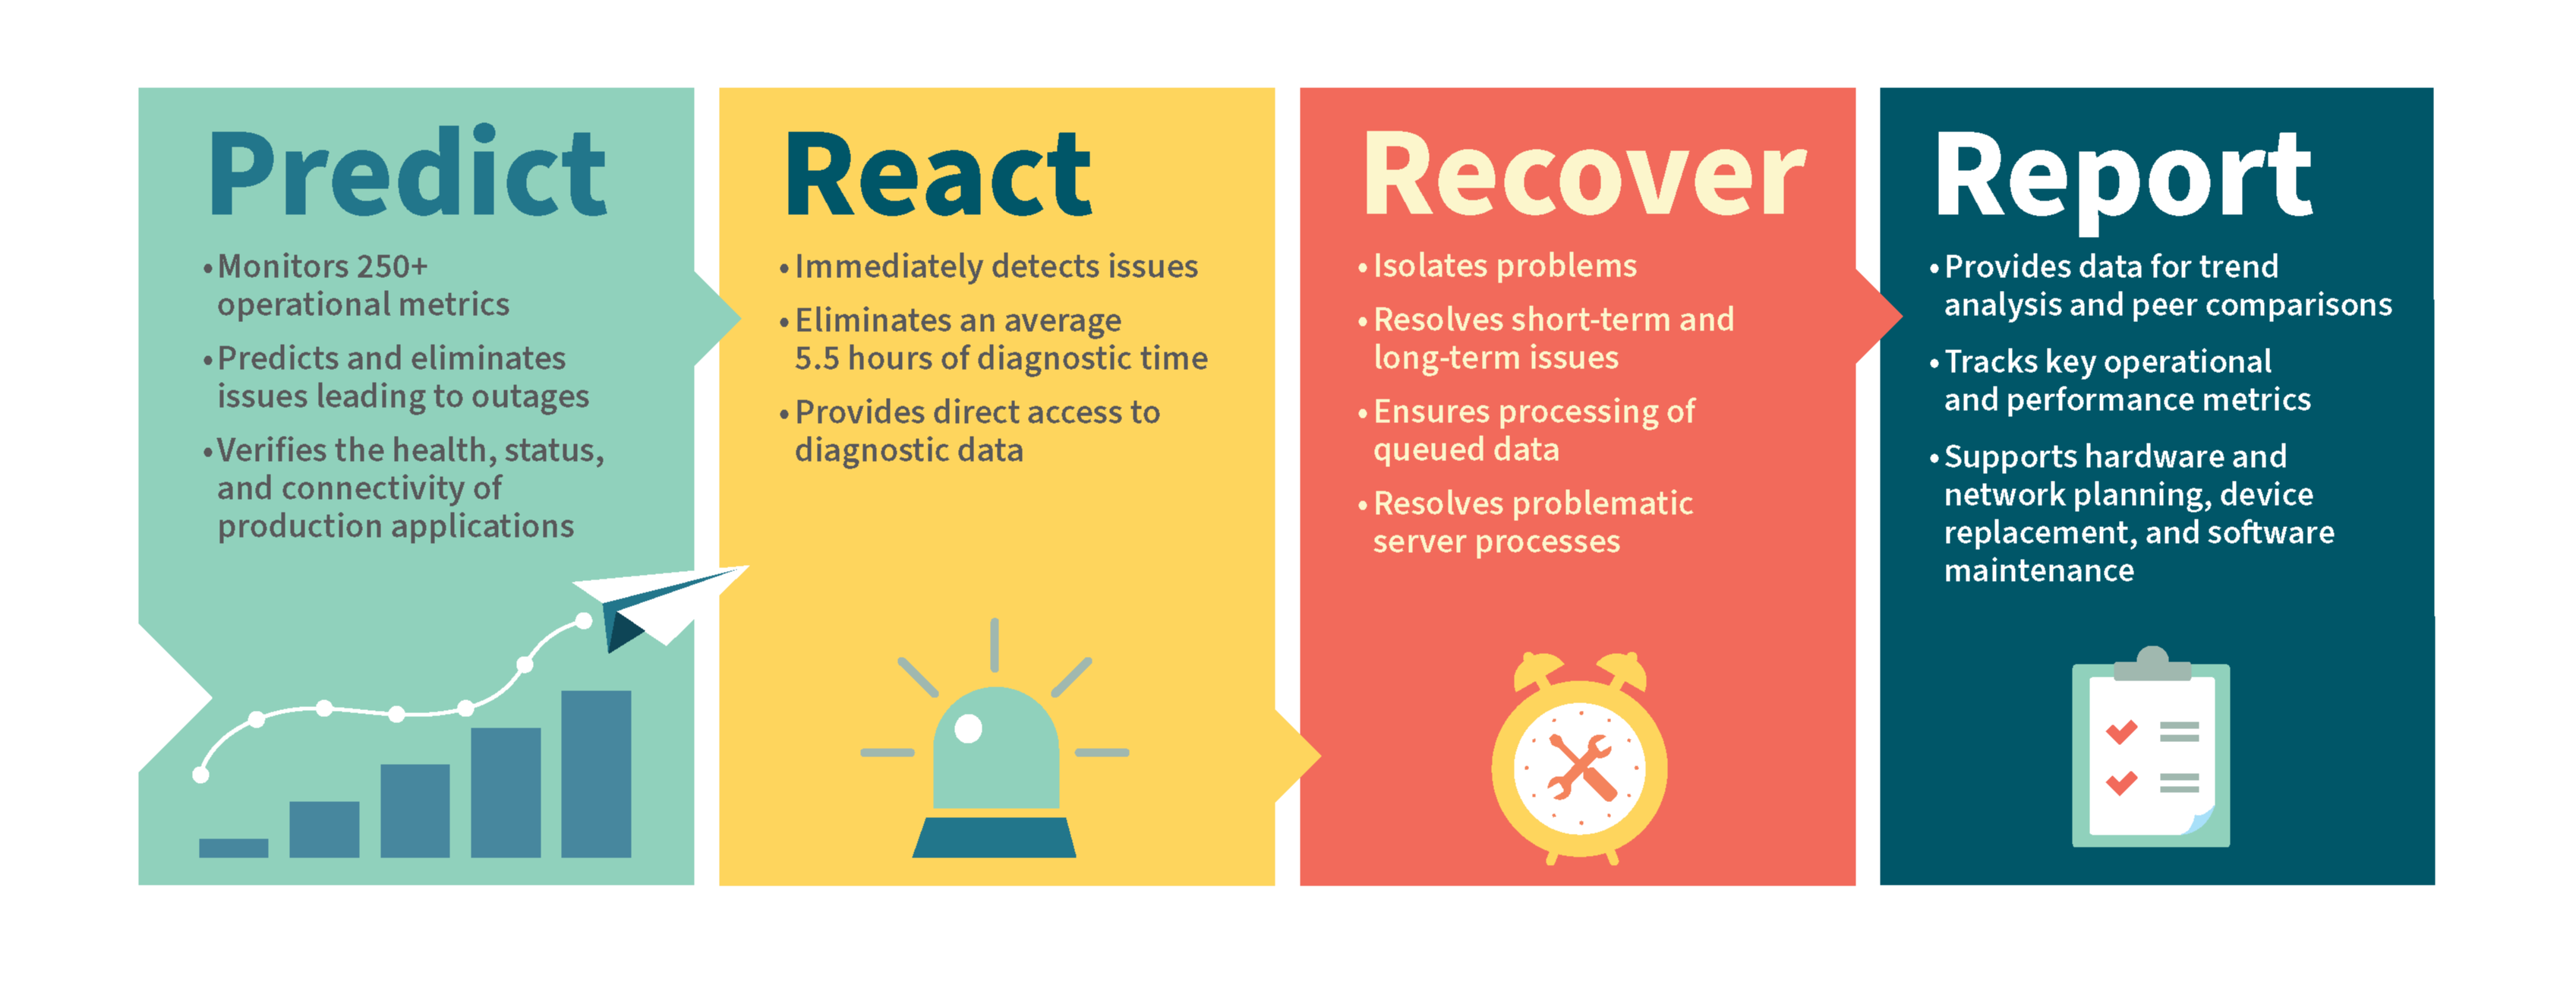 predict-react-recover-report